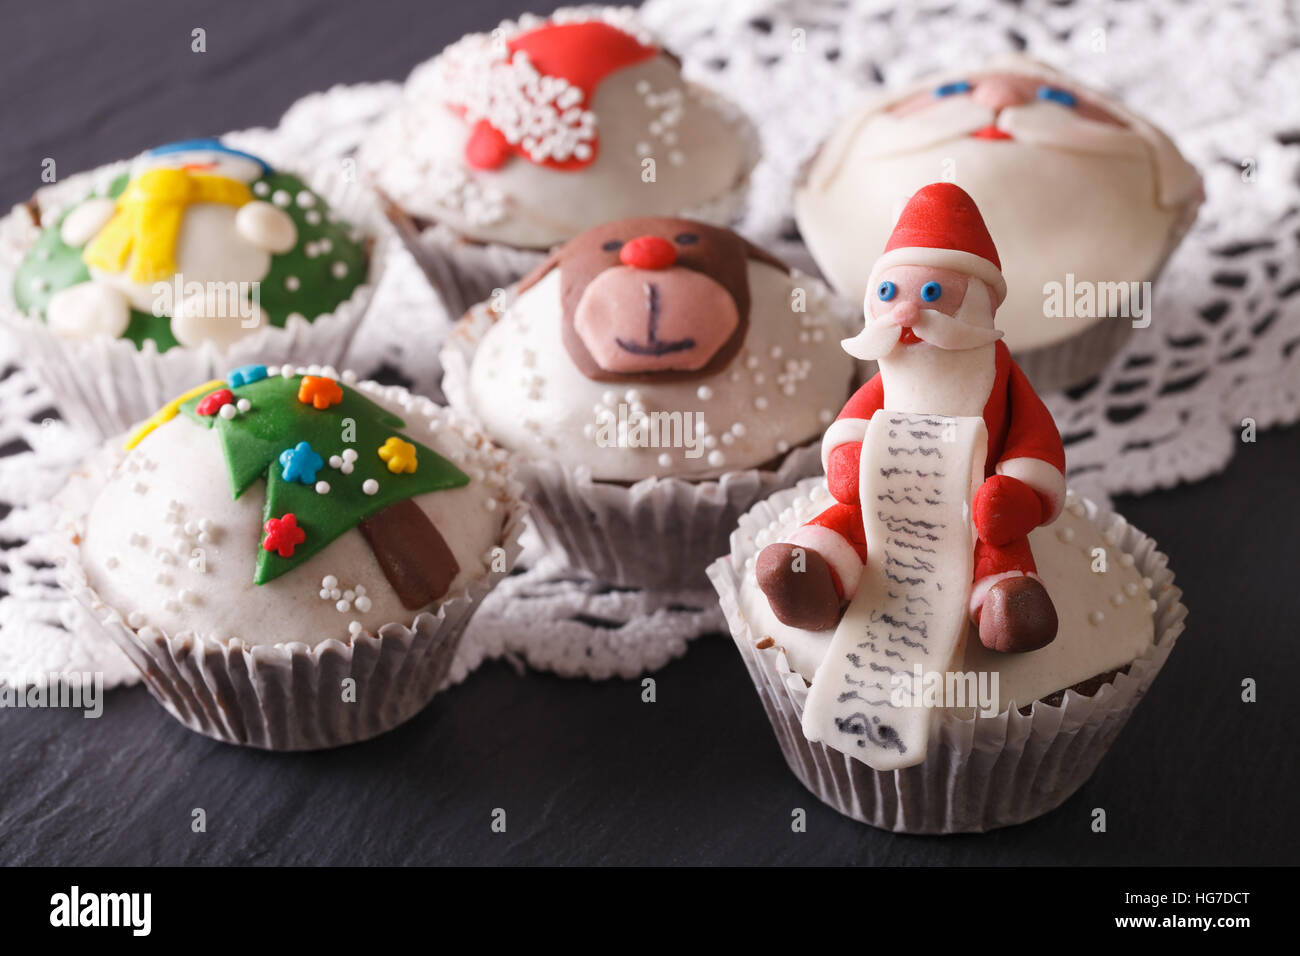 Fabulous Christmas cupcakes decorated  close-up on the table. horizontal - Stock Image